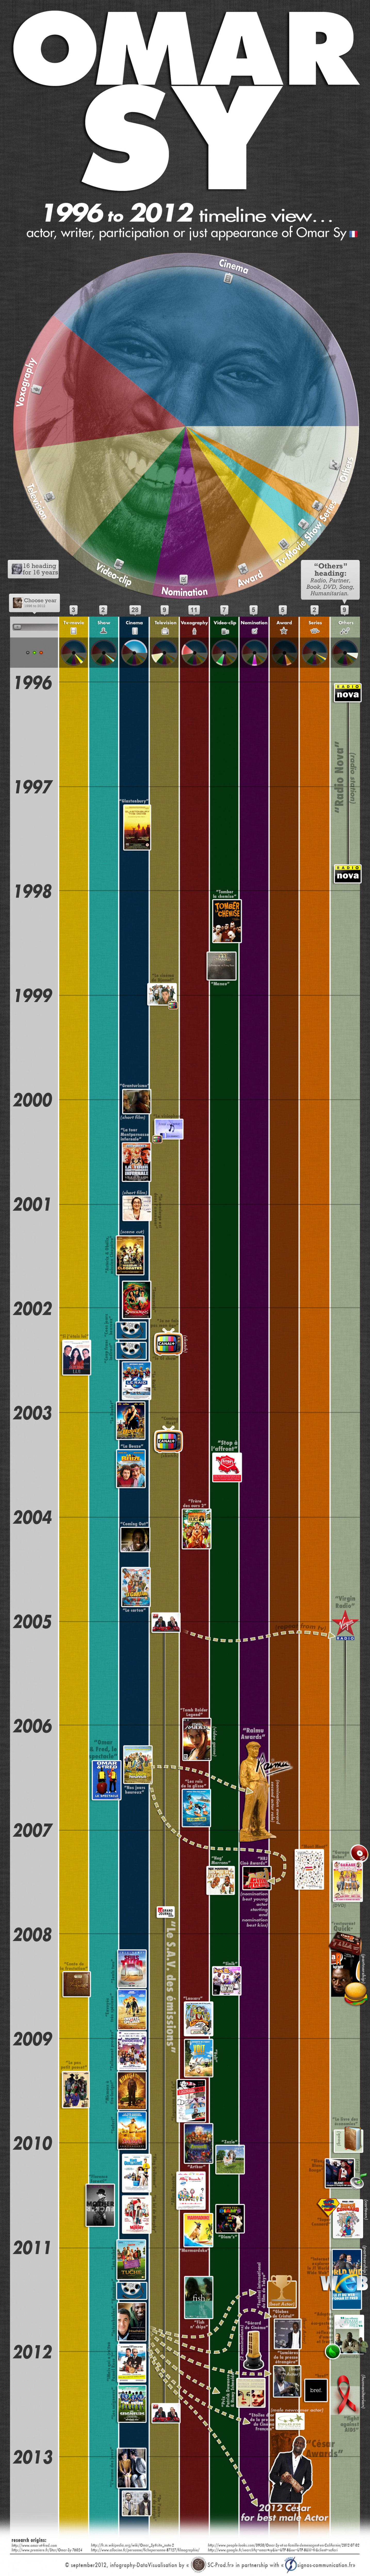 French actor Omar Sy, 1996 to 2012 Infographic